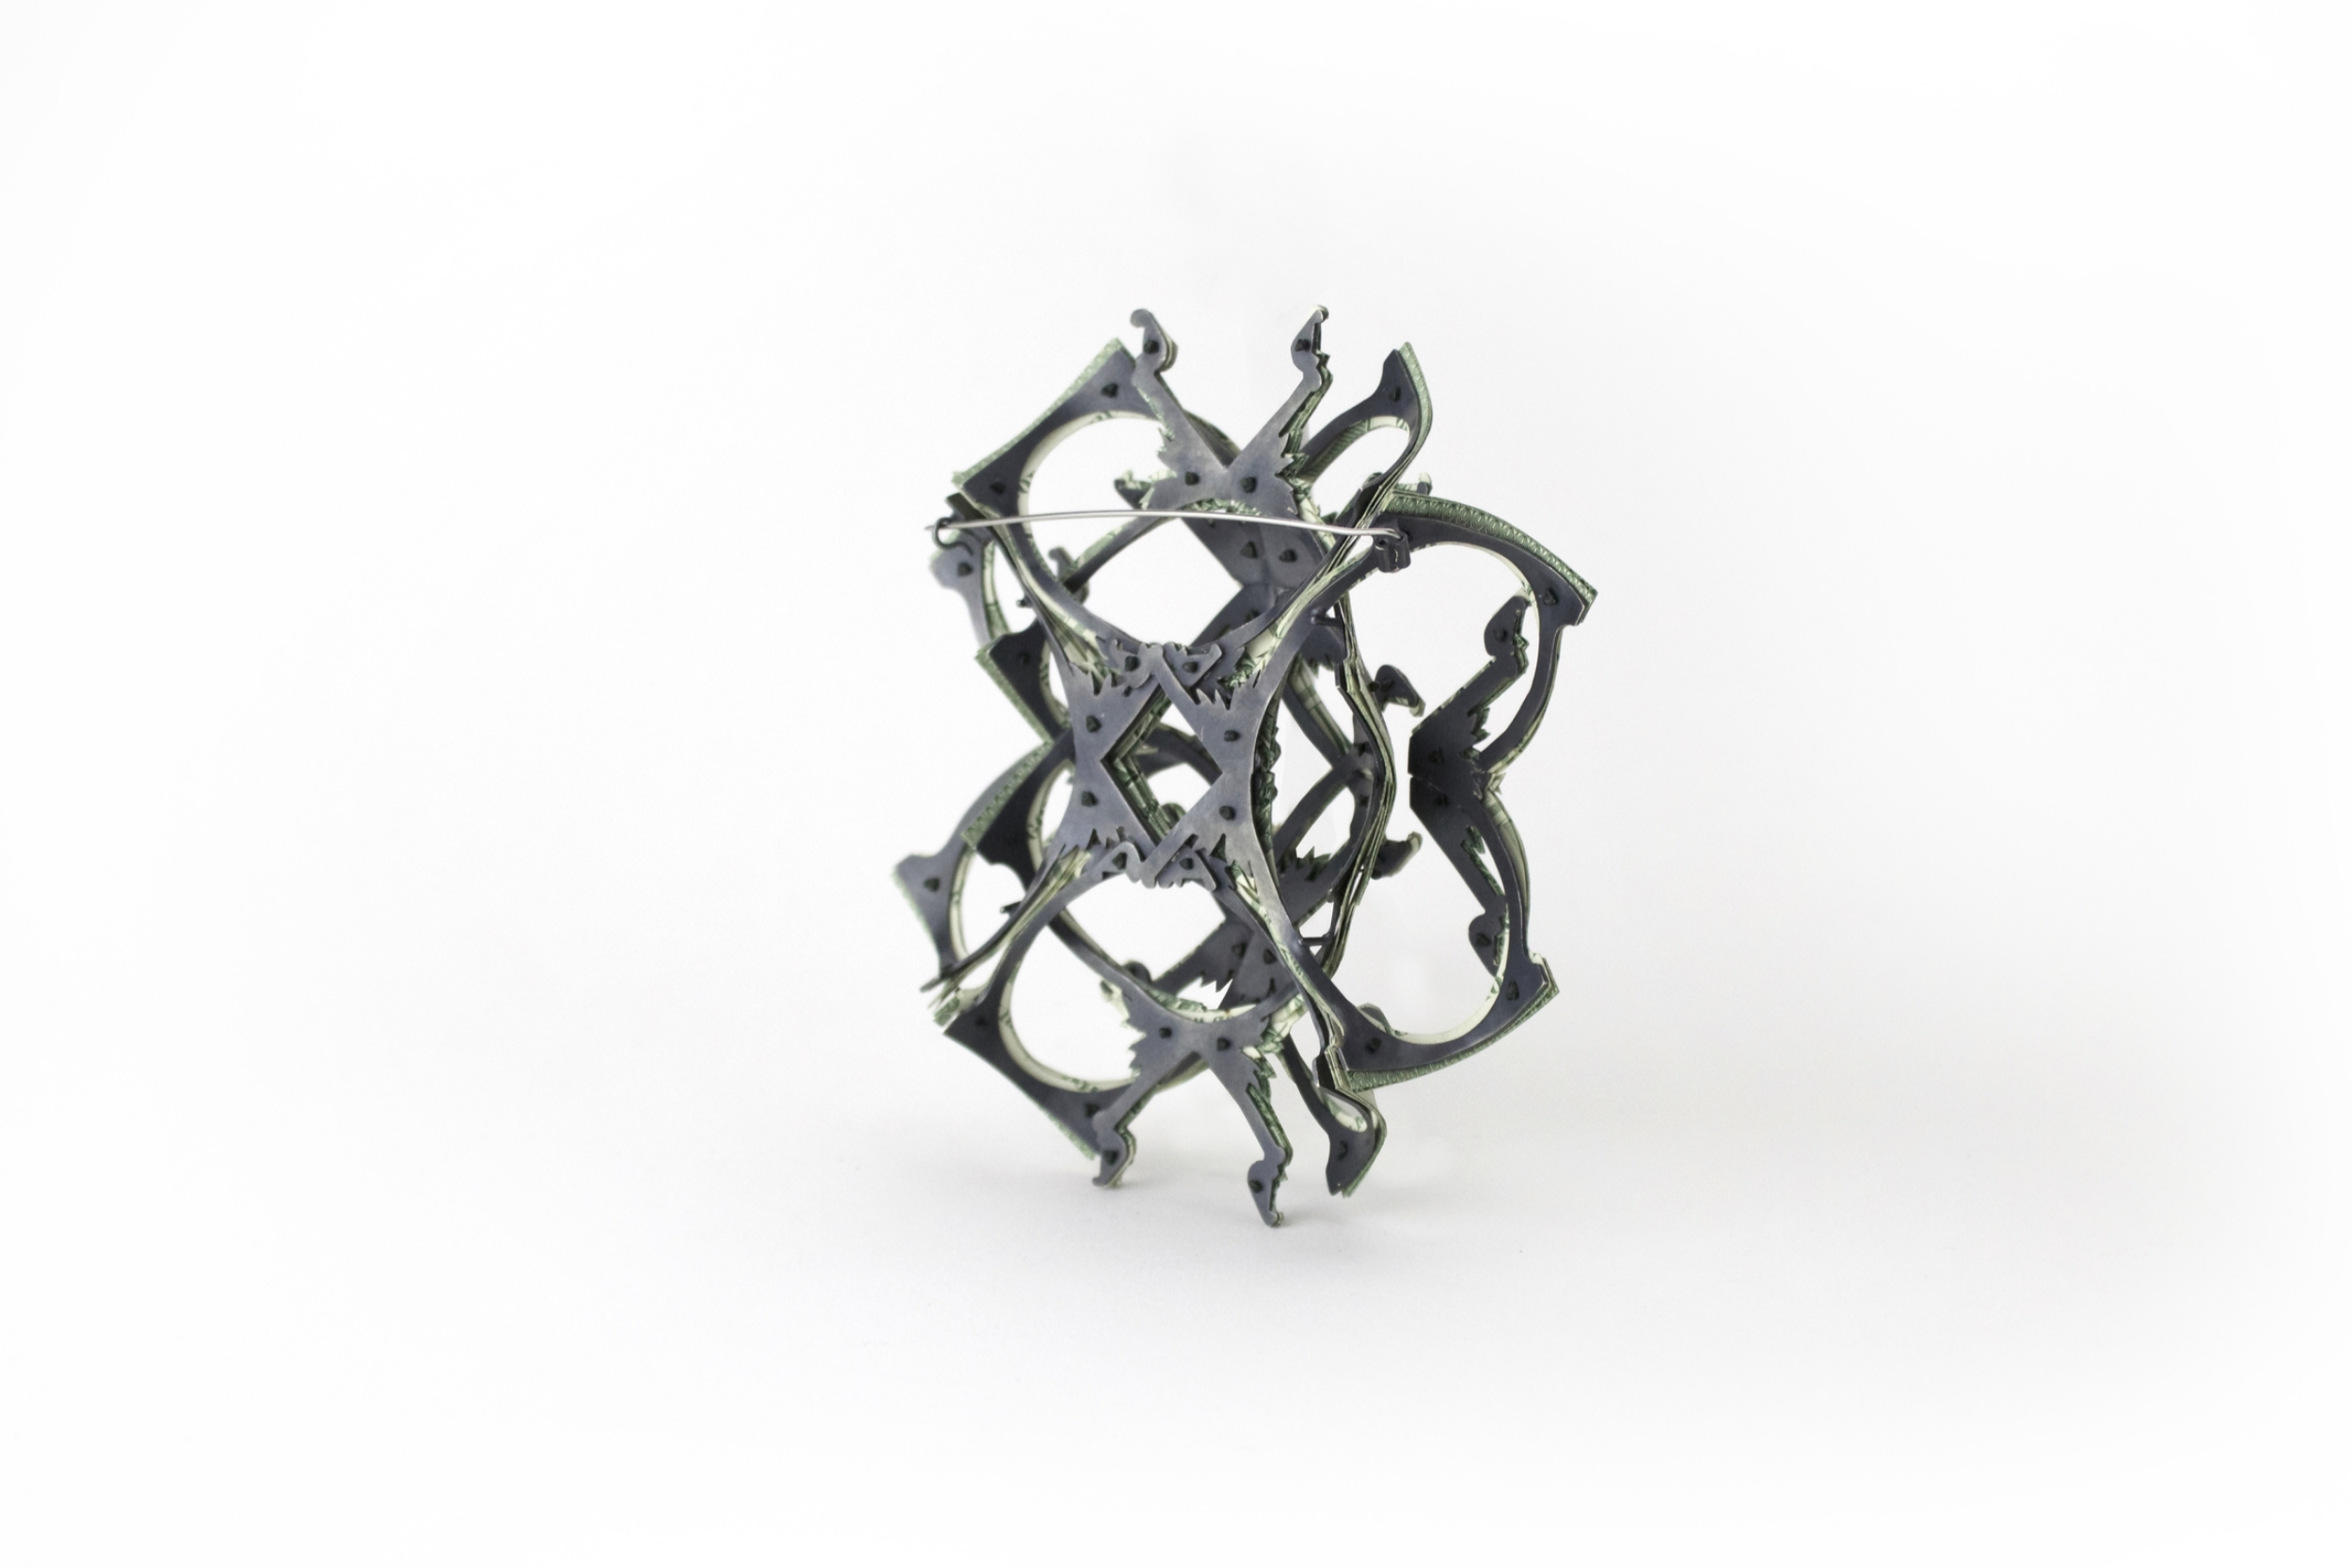 $97.00 Currency Converted | Brooch Backside | US Dollars, Silver, Monofilament, and Surgical Steel | 2016 | 1/1